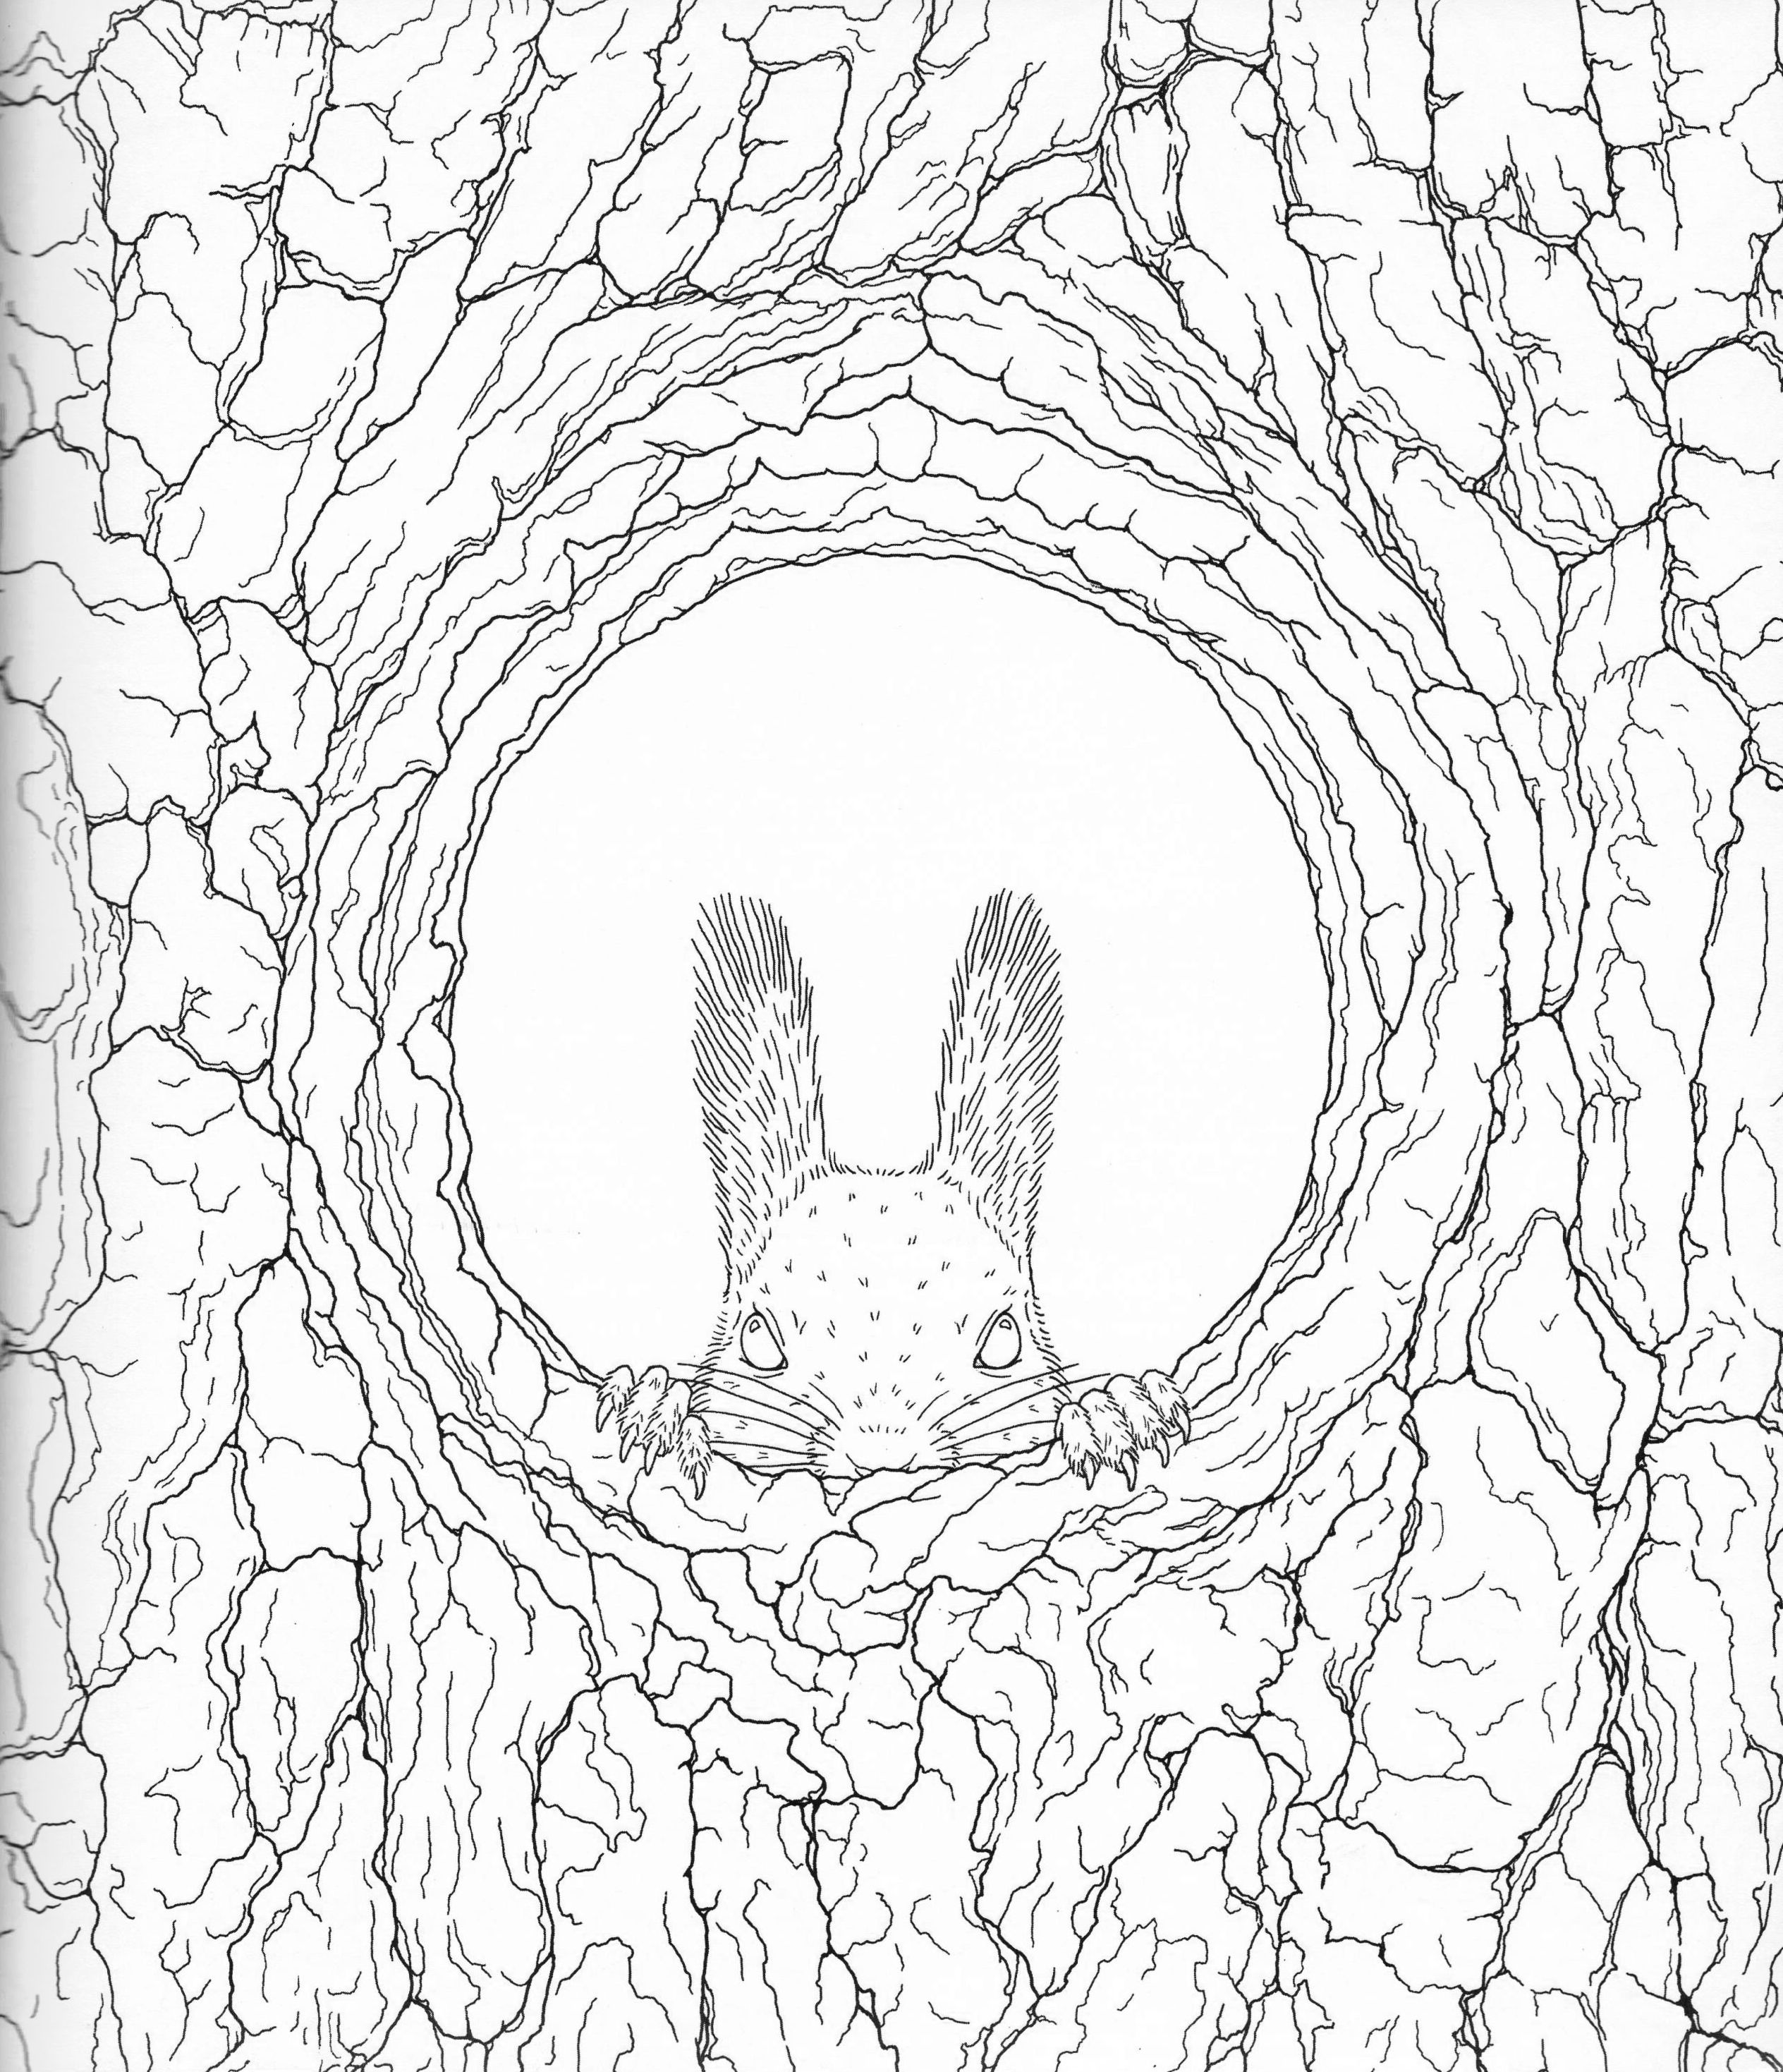 coloring pages of nature and animals eulen49328598324753245 eulen owl animal malvorlagen coloring pages animals and nature of